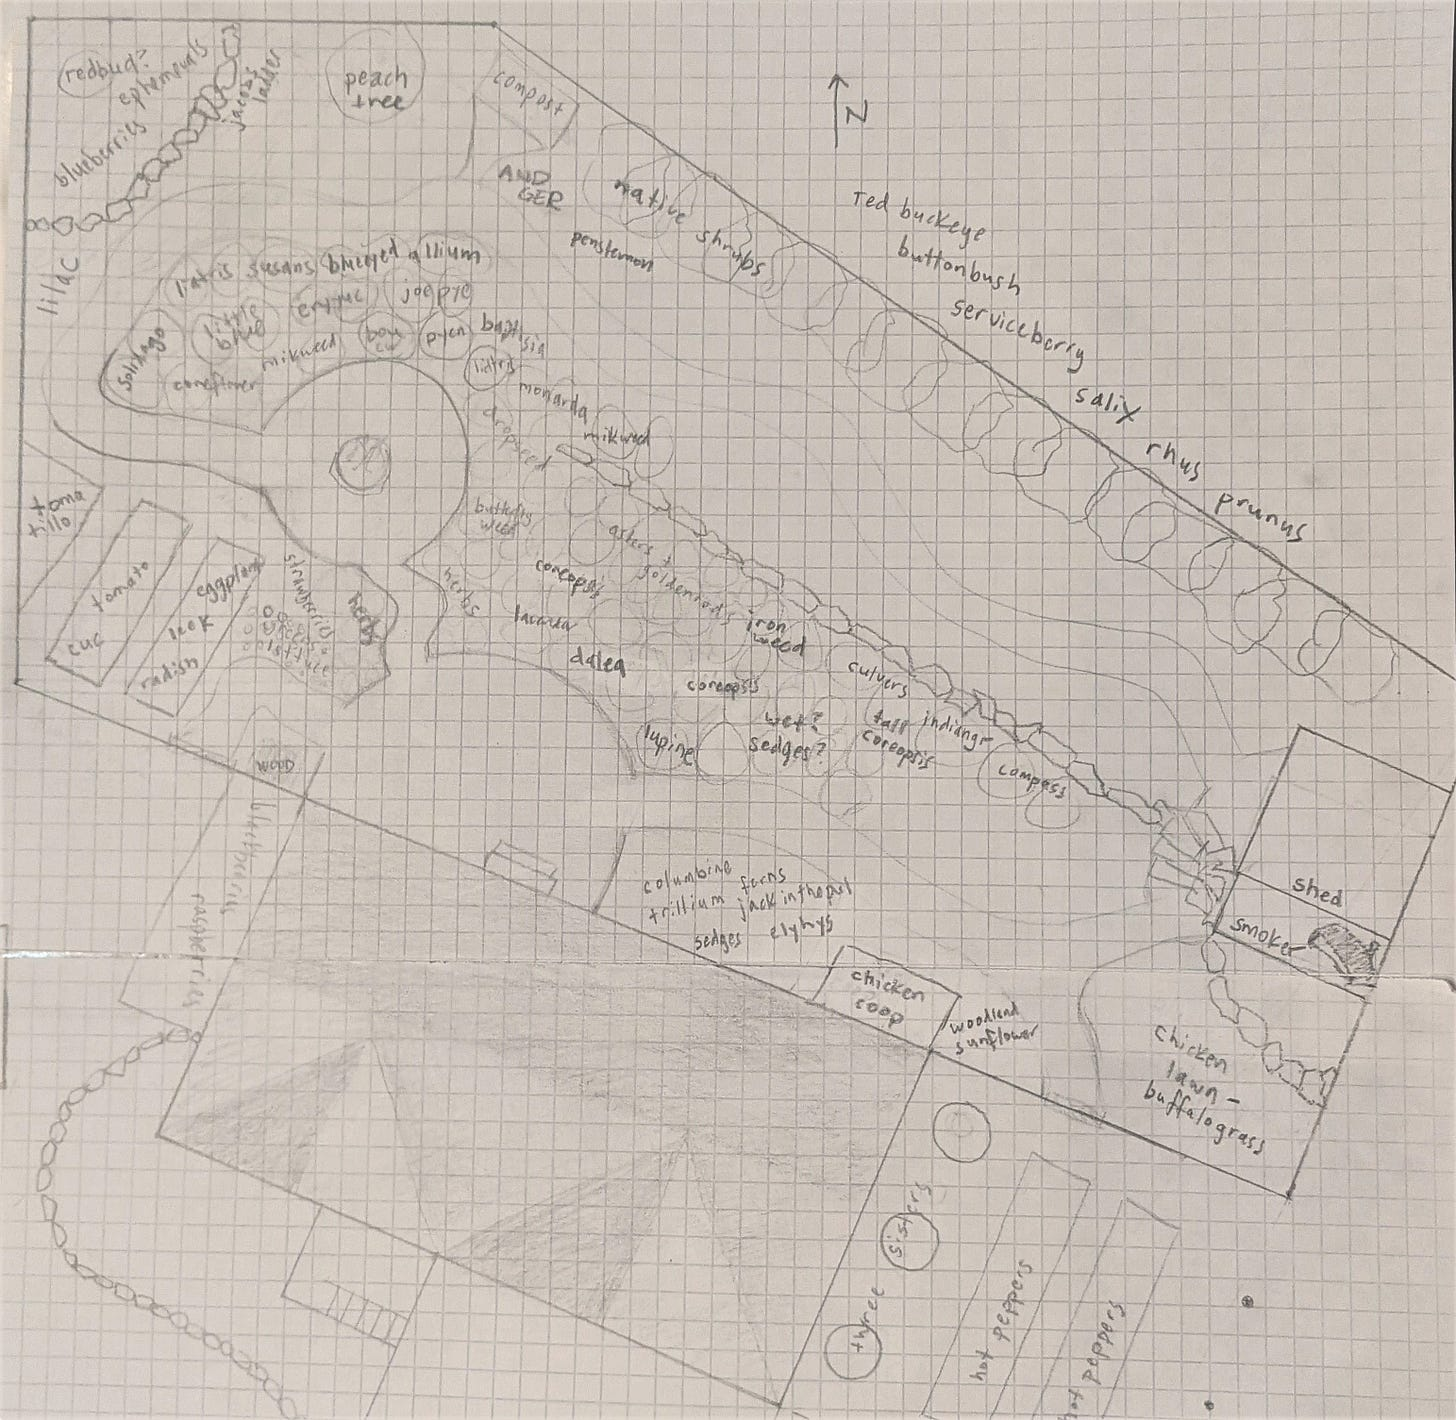 Pencil sketch on graph paper showing the layout of a backyard.